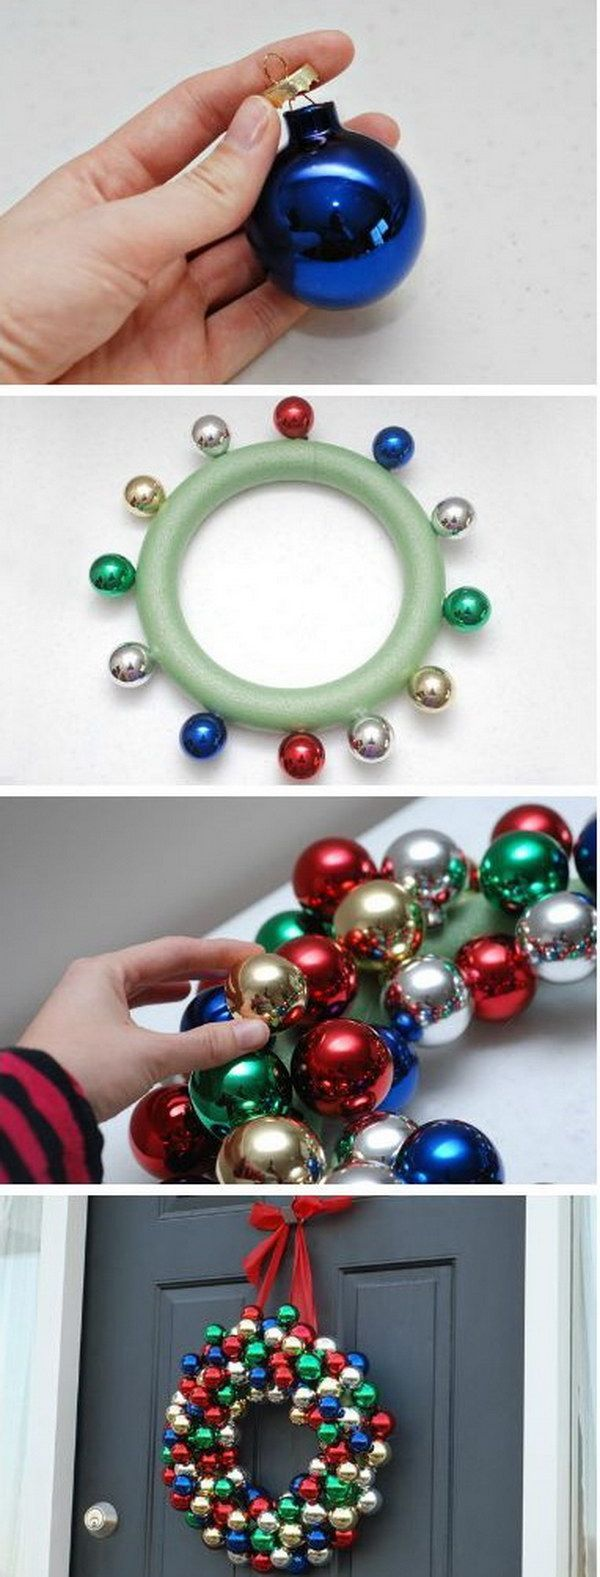 DIY Christmas Ornament Wreath                                                                                                                                                     More